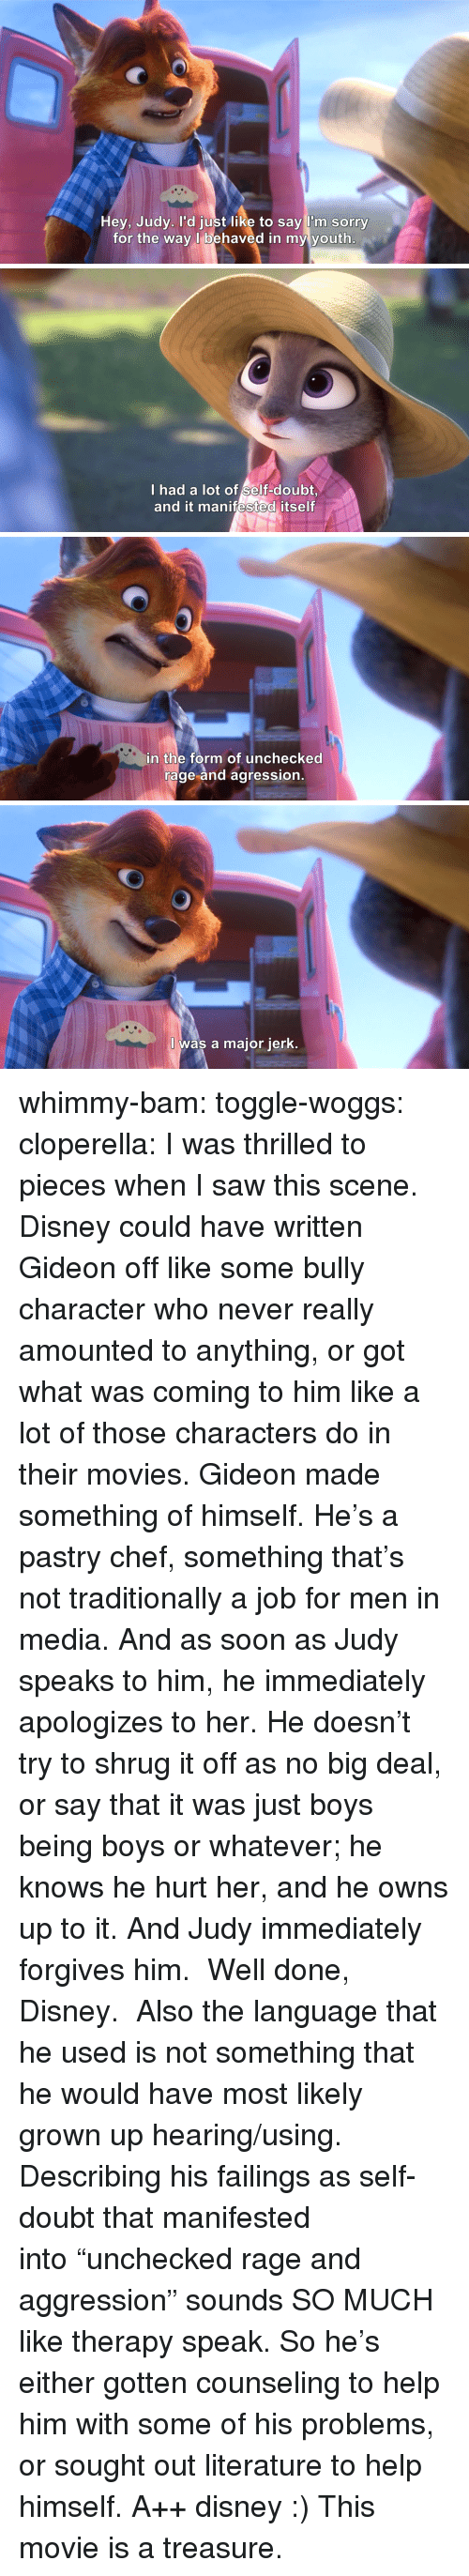 """Disney, Movies, and Saw: Hey, Judy. l'd just like to say l'm sorry  for the way l behaved in my youth   I had a lot of self-doubt  and it manifested itself   in the form of unchecked  rage and agression   I was a major jerk. whimmy-bam: toggle-woggs:  cloperella:  I was thrilled to pieces when I saw this scene. Disney could have written Gideon off like some bully character who never really amounted to anything, or got what was coming to him like a lot of those characters do in their movies.Gideon made something of himself. He's a pastry chef, something that's not traditionally a job for men in media. And as soon as Judy speaks to him, he immediately apologizes to her. He doesn't try to shrug it off as no big deal, or say that it was just boys being boys or whatever; he knows he hurt her, and he owns up to it. And Judy immediately forgives him. Well done, Disney.  Also the language that he used is not something that he would have most likely grown up hearing/using. Describing his failings as self-doubt that manifested into""""unchecked rage and aggression"""" sounds SO MUCH like therapy speak. So he's either gotten counseling to help him with some of his problems, or sought out literature to help himself. A++ disney :)  This movie is a treasure."""